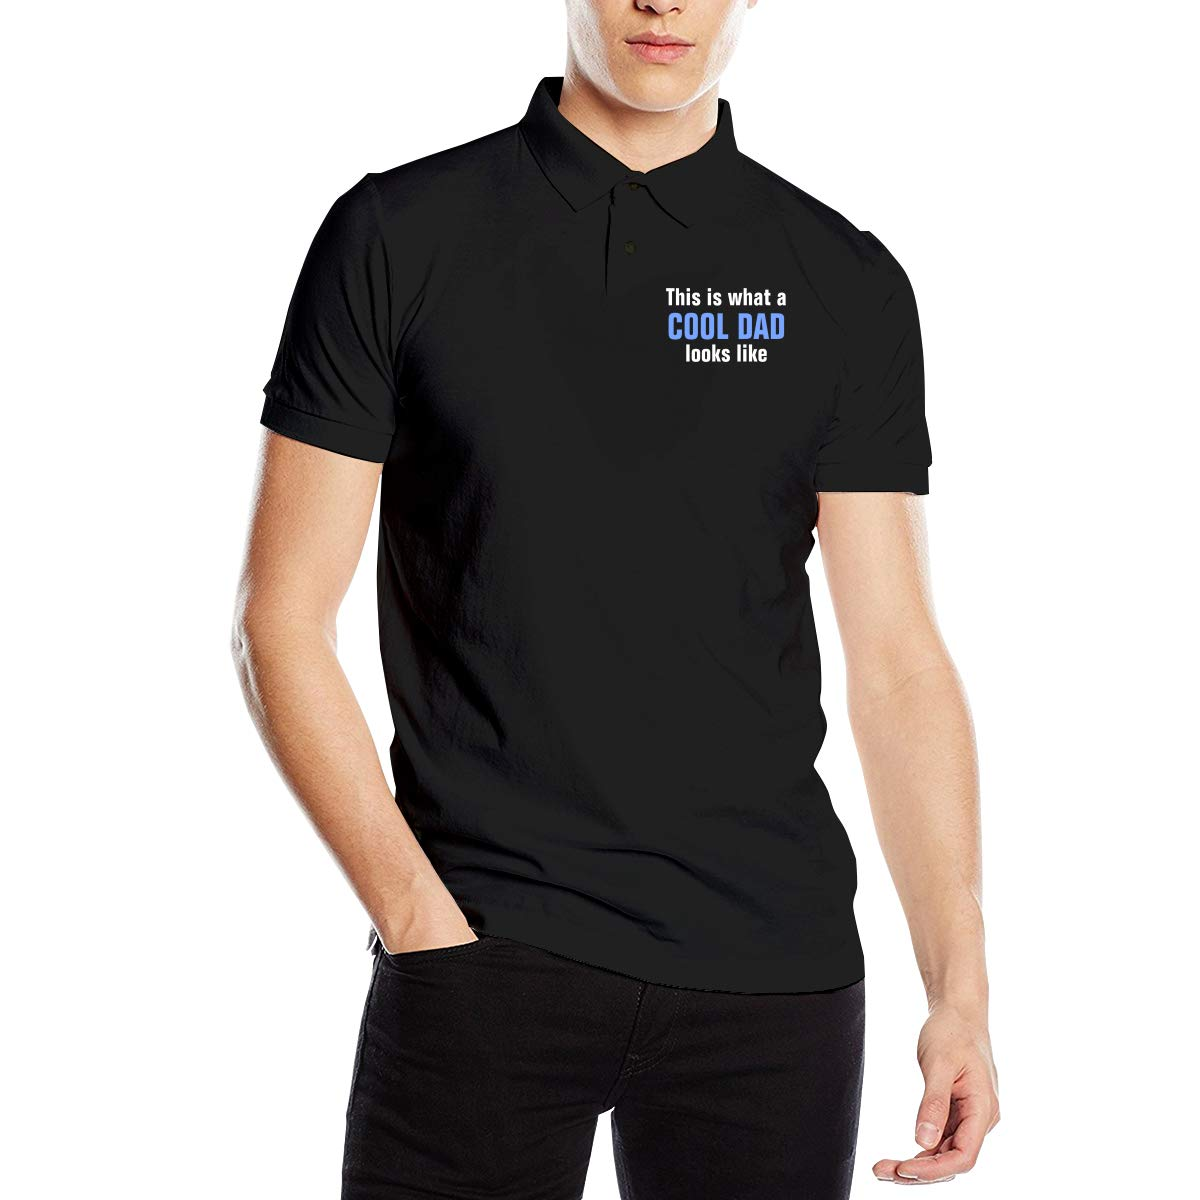 Cjlrqone This is What A Cool DAD Looks Like Mens Comfortable Polo Shirts S Black